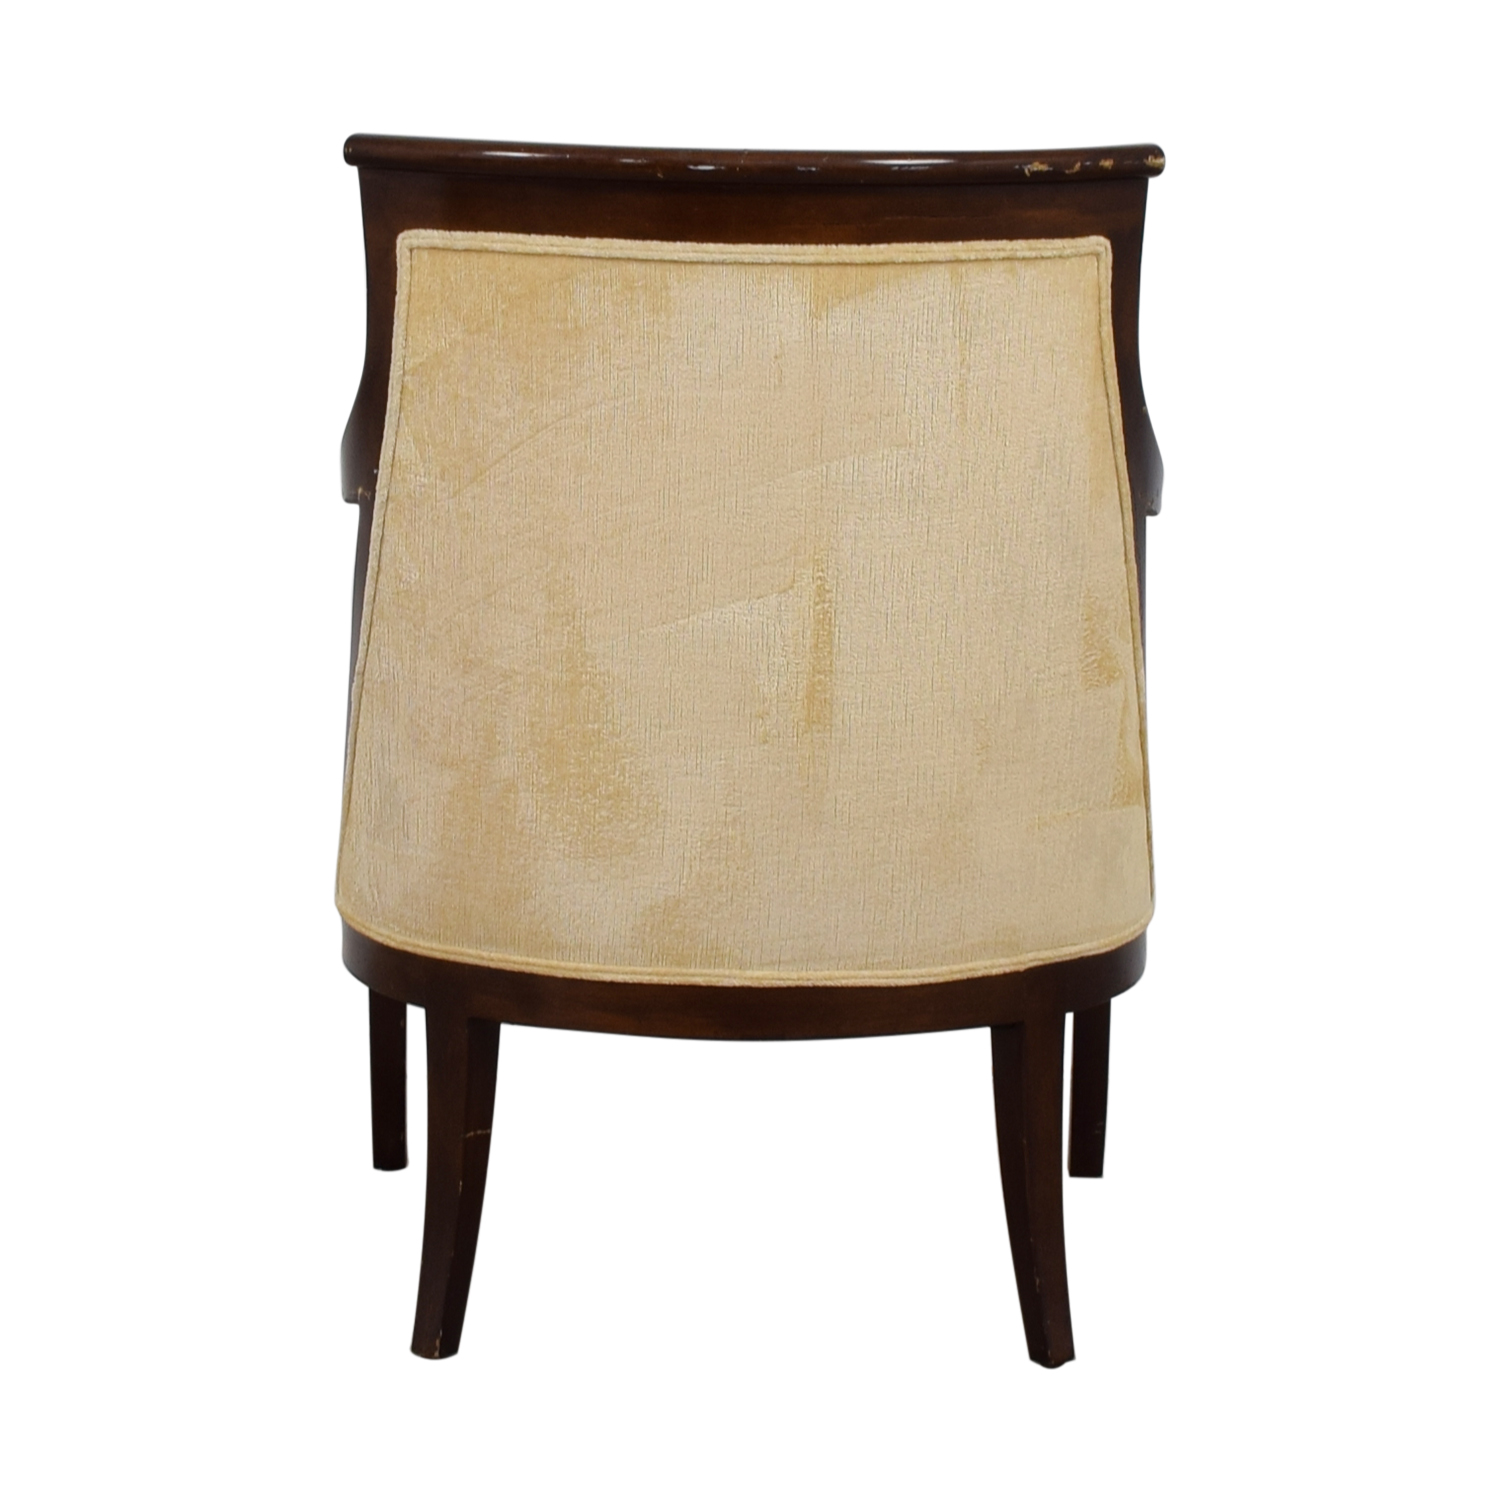 Mariette Himes Gomez Mariette Himes Gomez Beige Arm Chair Accent Chairs